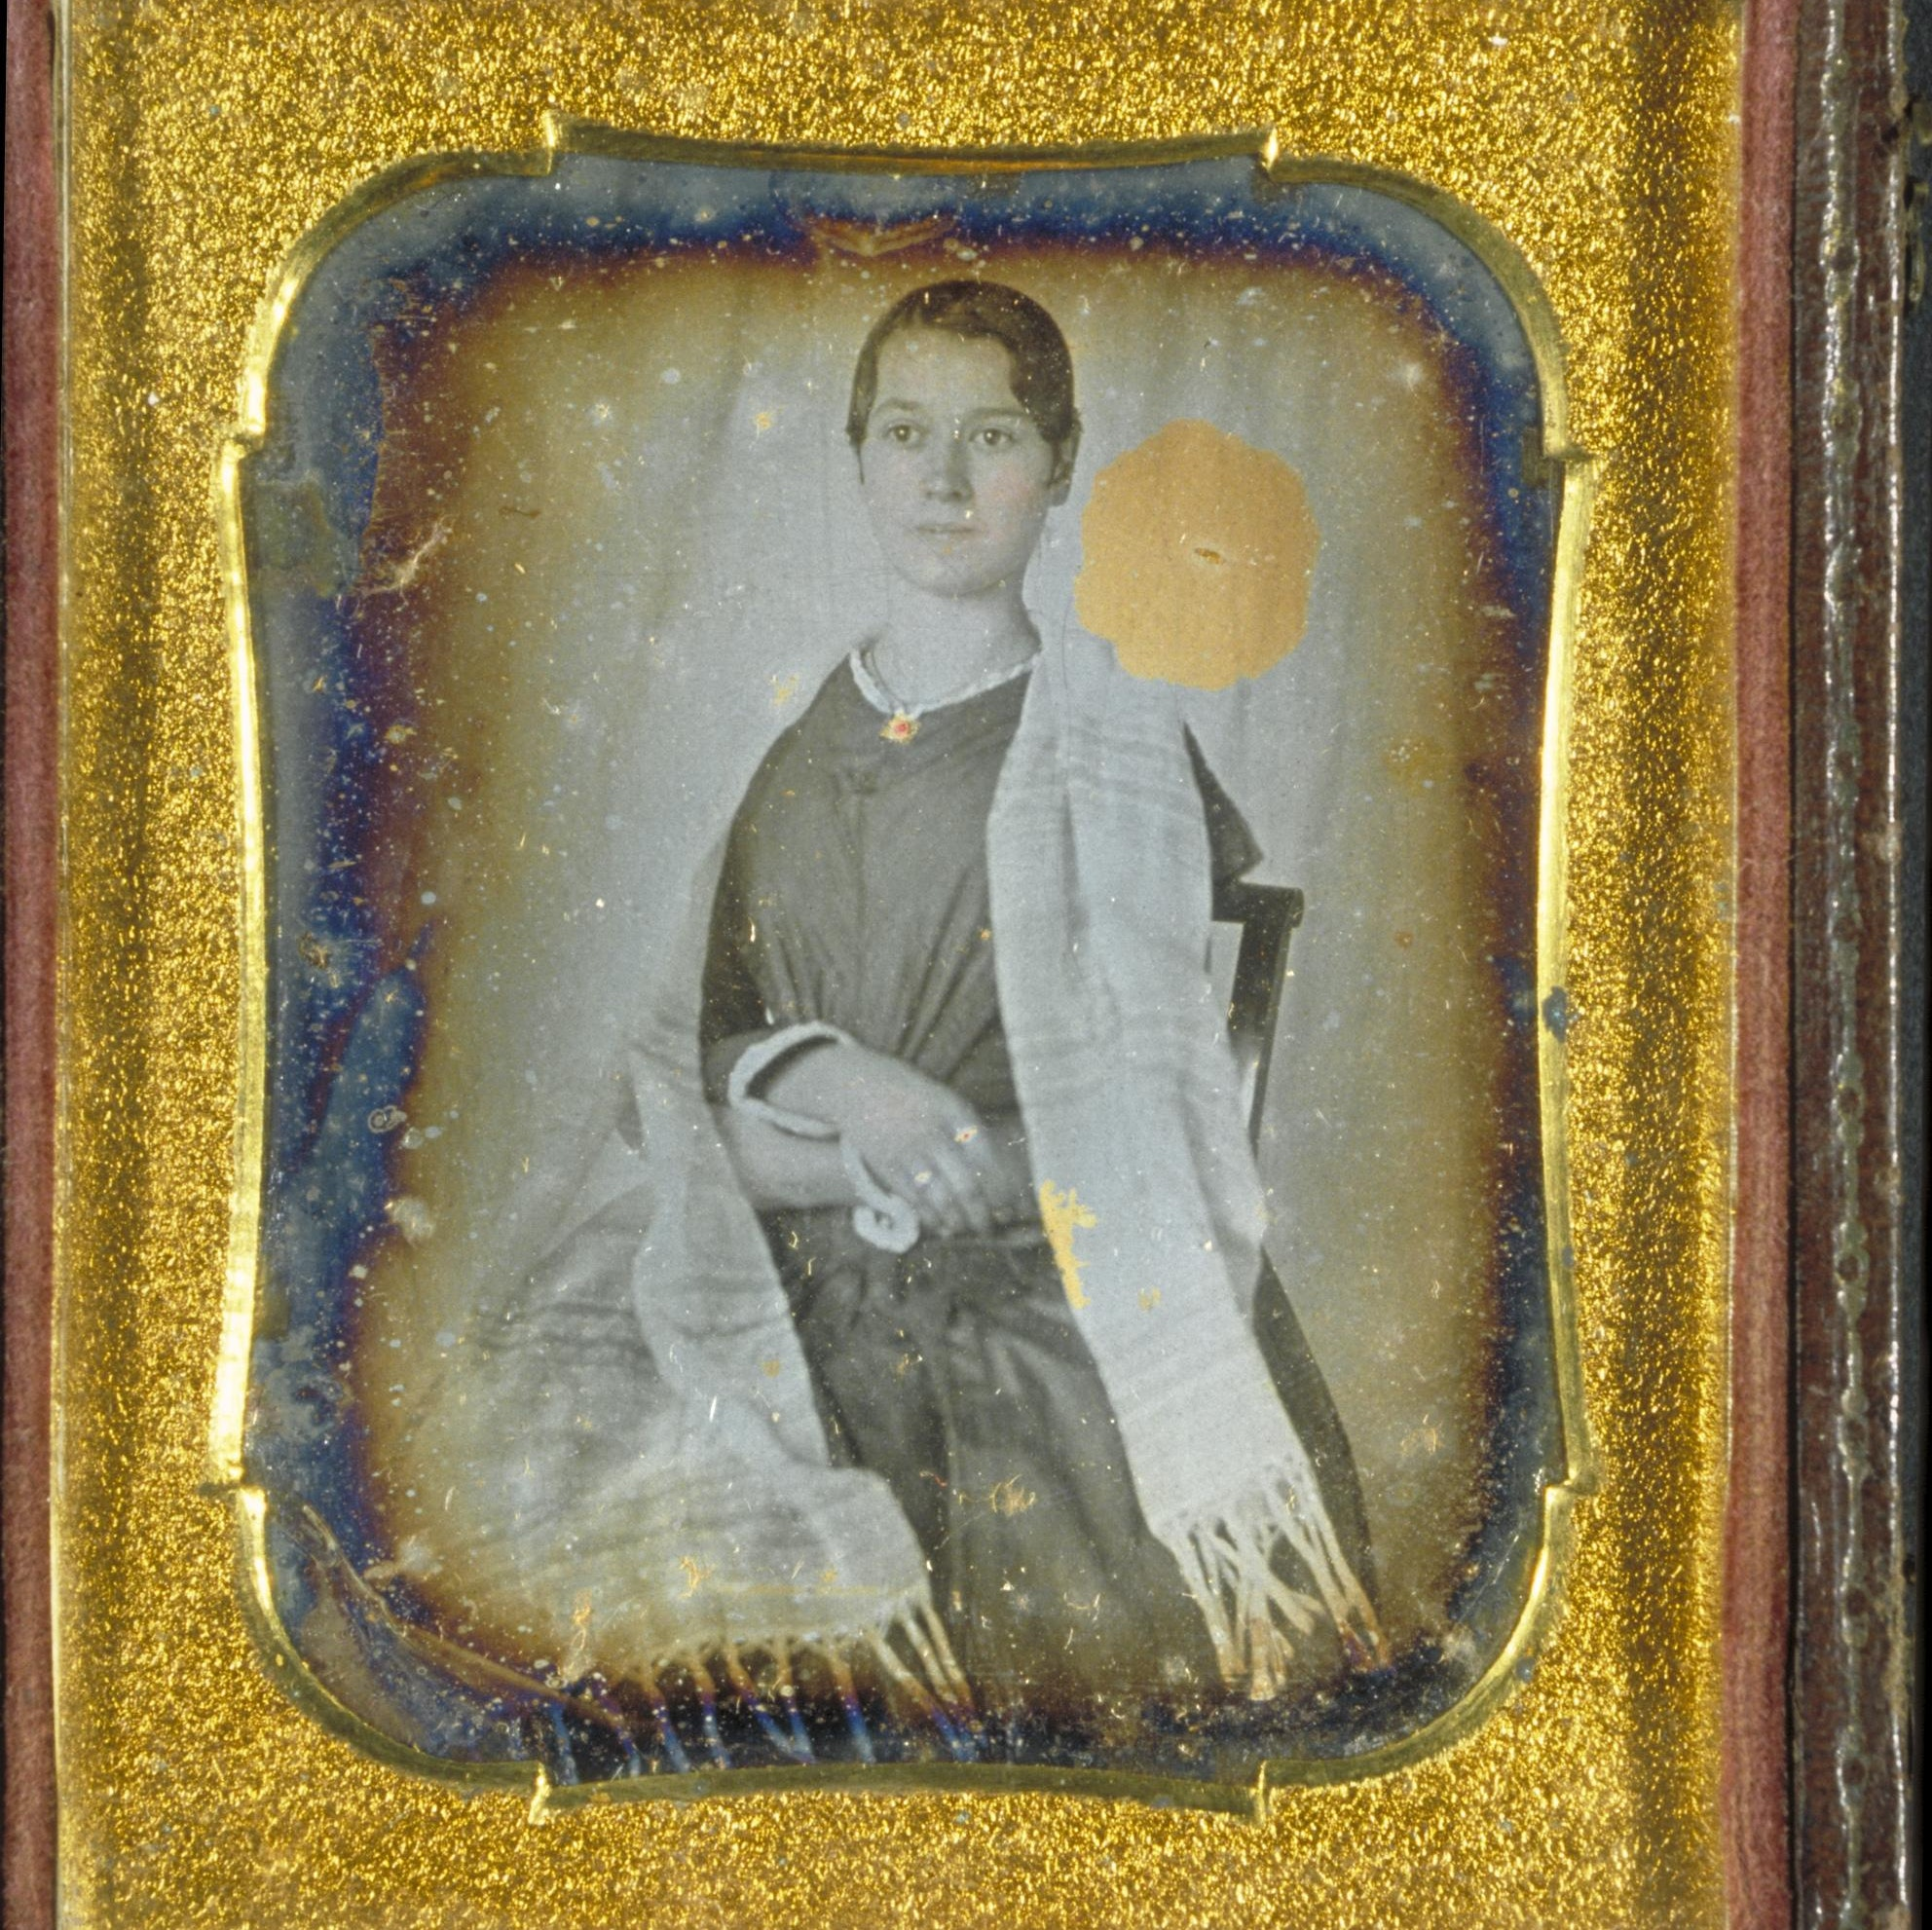 A discolored daguerreotype portrait of Elizabeth Blackwell, wearing a white shawl, set in a an elaborate gold frame.